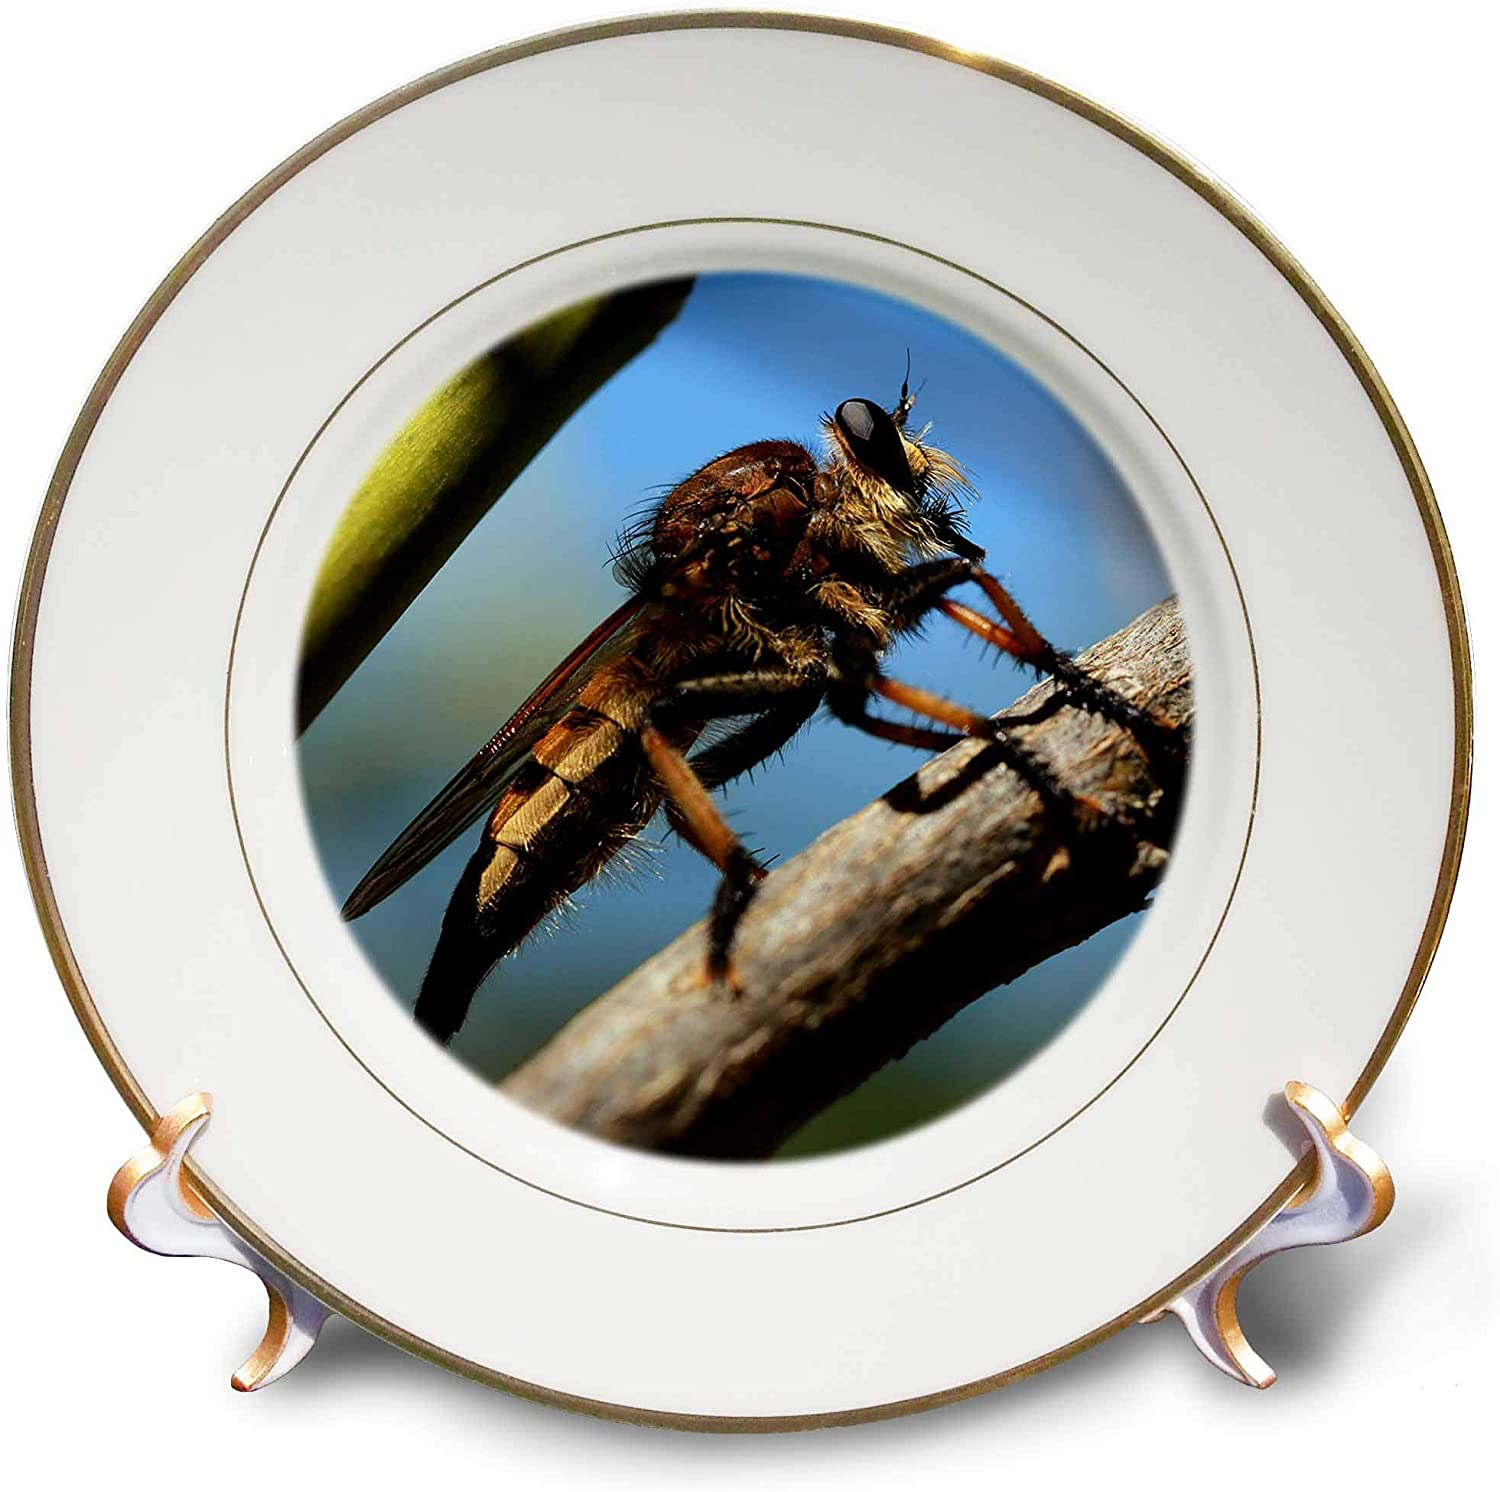 3dRose Stamp City - Insects - Macro Photograph of a Robber Fly Waiting for its Next Meal. - 8 inch Porcelain Plate (cp_325137_1)